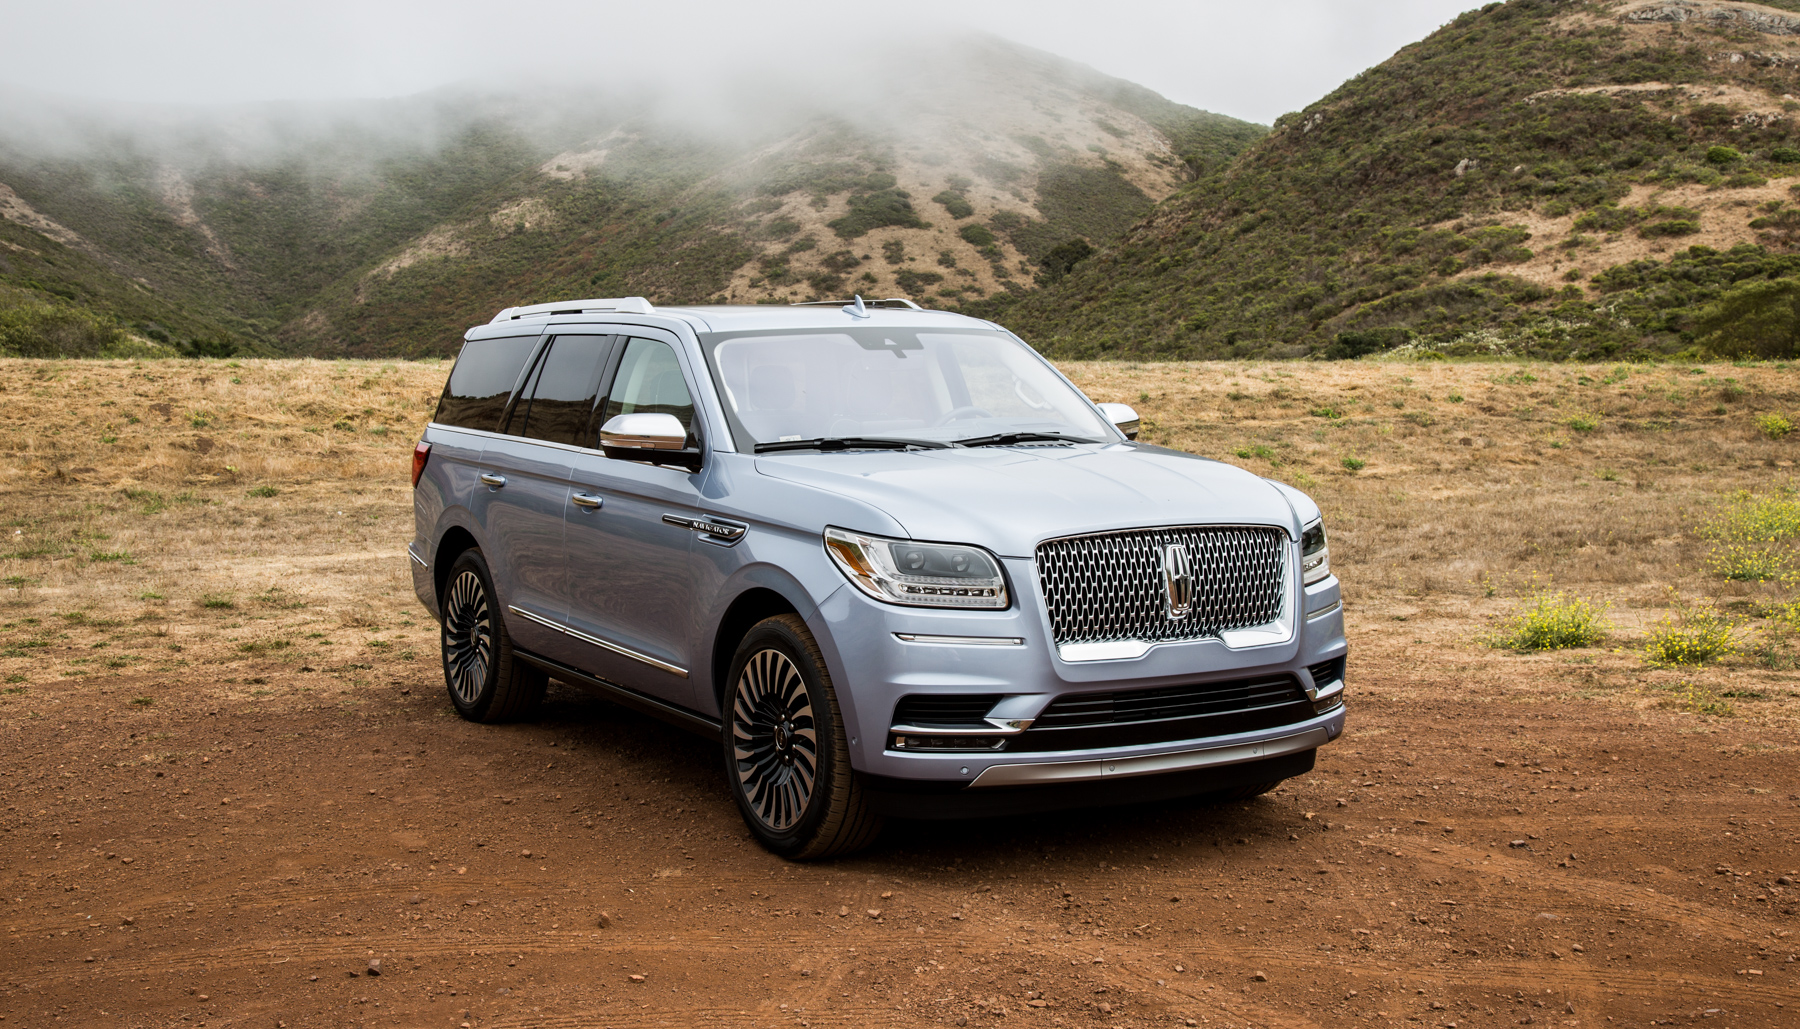 The Redesigned Lincoln Navigator Is Ready For Regular Folks